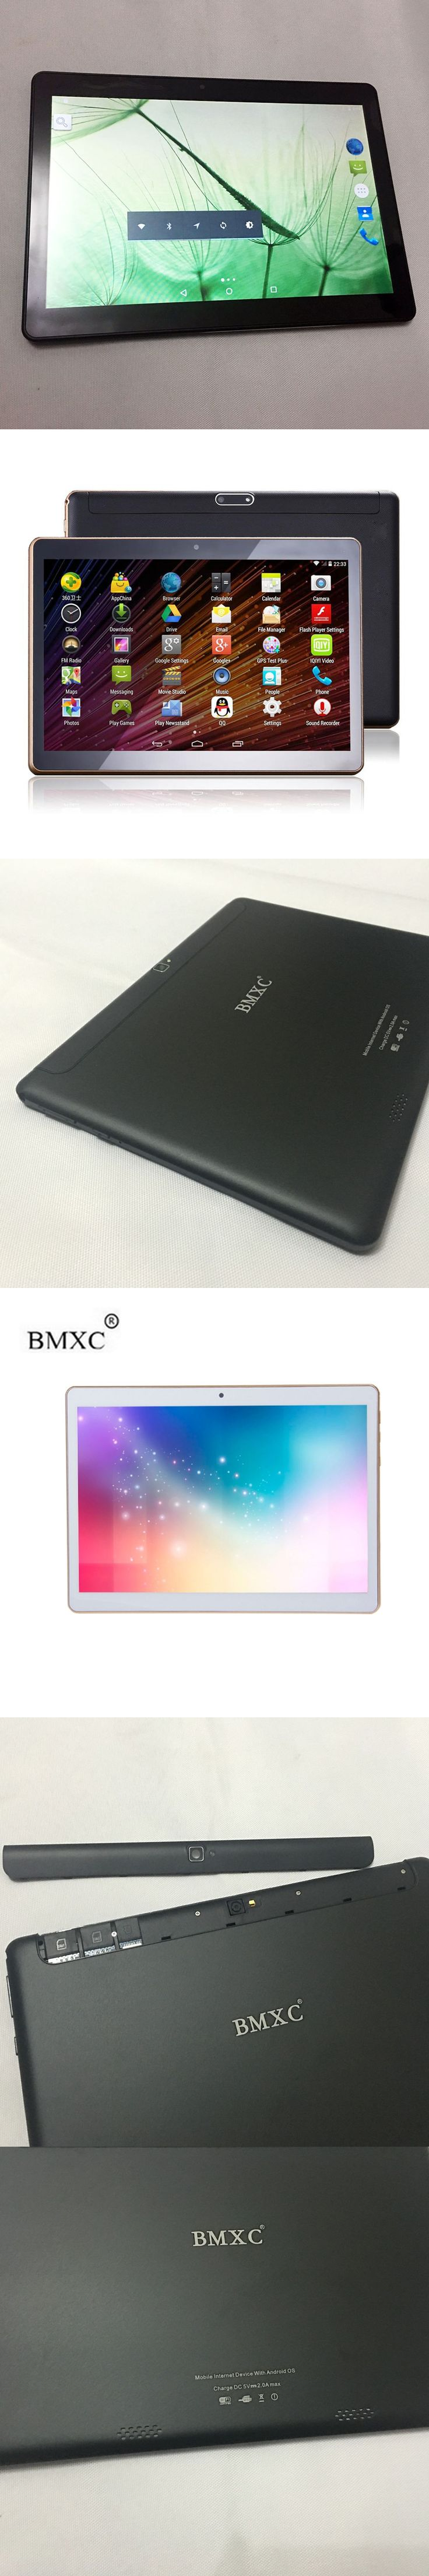 """2017 Newest 10 inch Tablet PC Octa Core Dual SIM Android 6.0 1920*1200 GPS Tablet PC 10"""" +Gift Brand BMXC"""